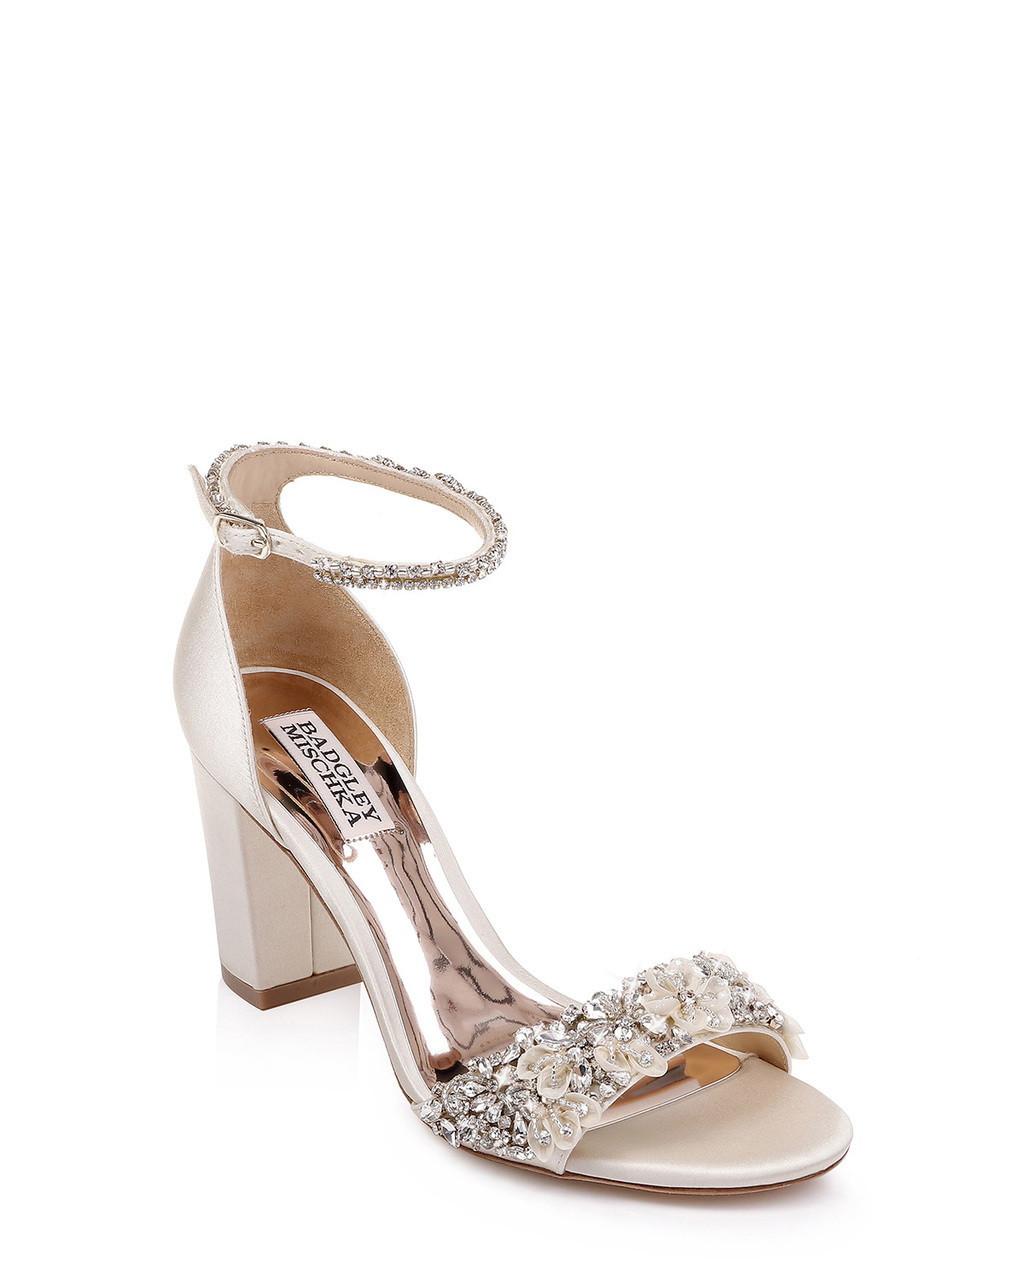 db38ab4cb6a21 Finesse Ankle Strap Evening Shoe by Badgley Mischka